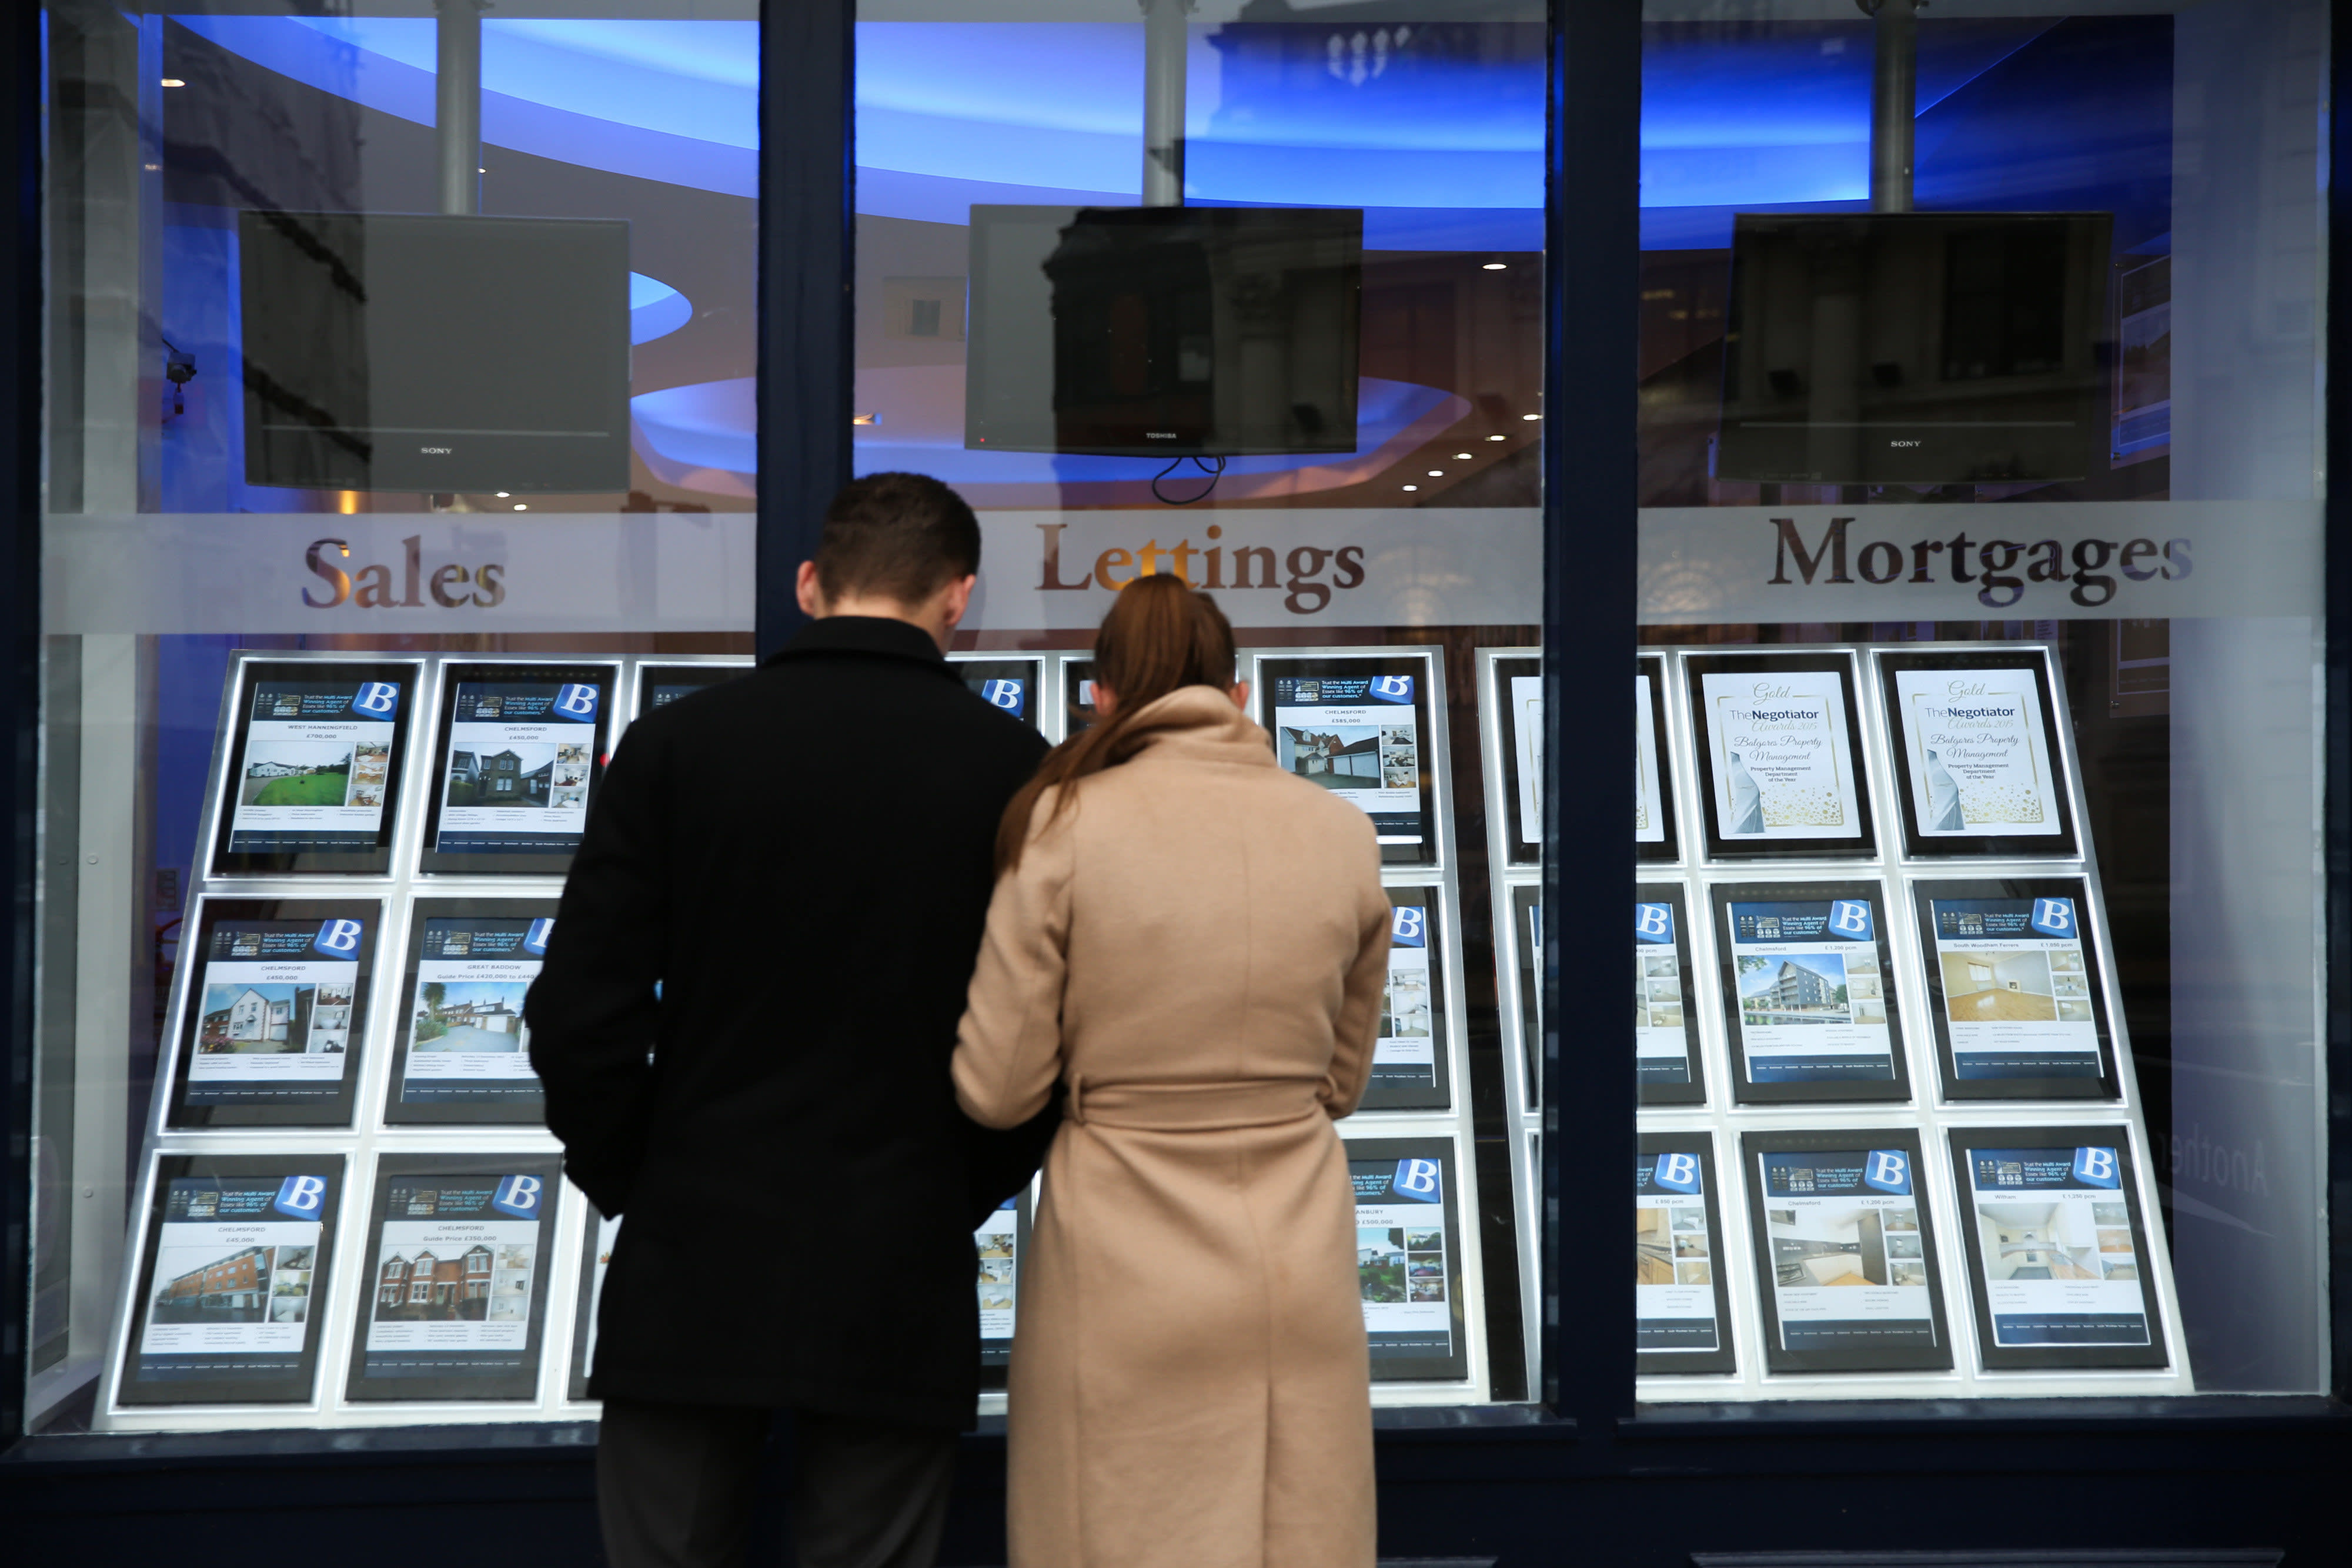 Housing market sees post-election 'uplift'